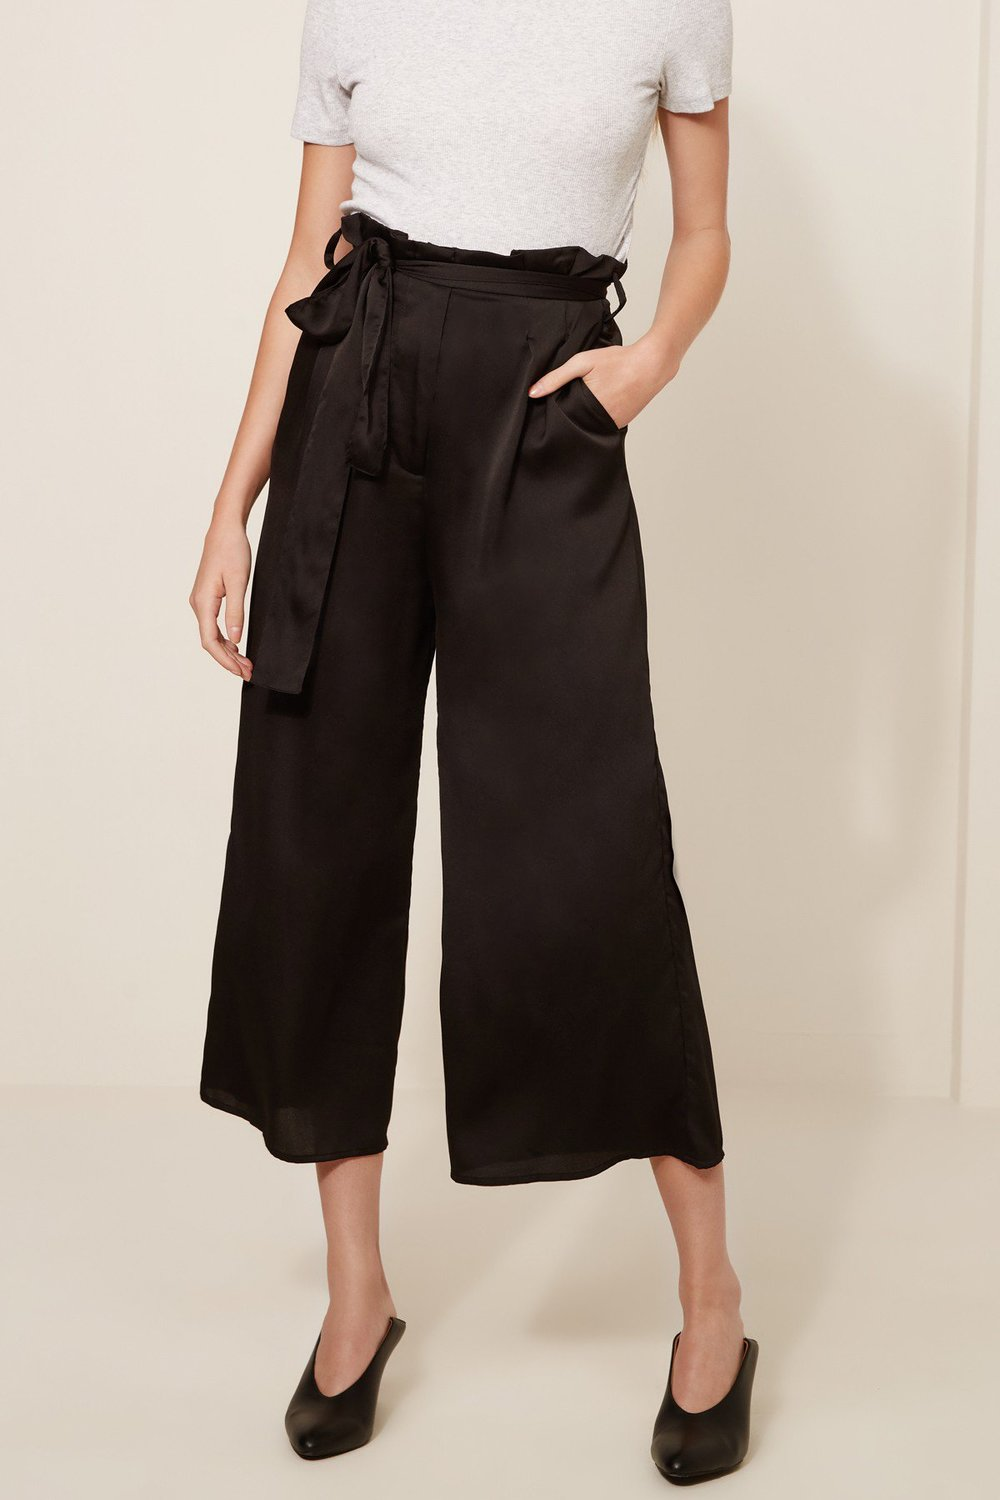 The Fifth Label Lola Pant